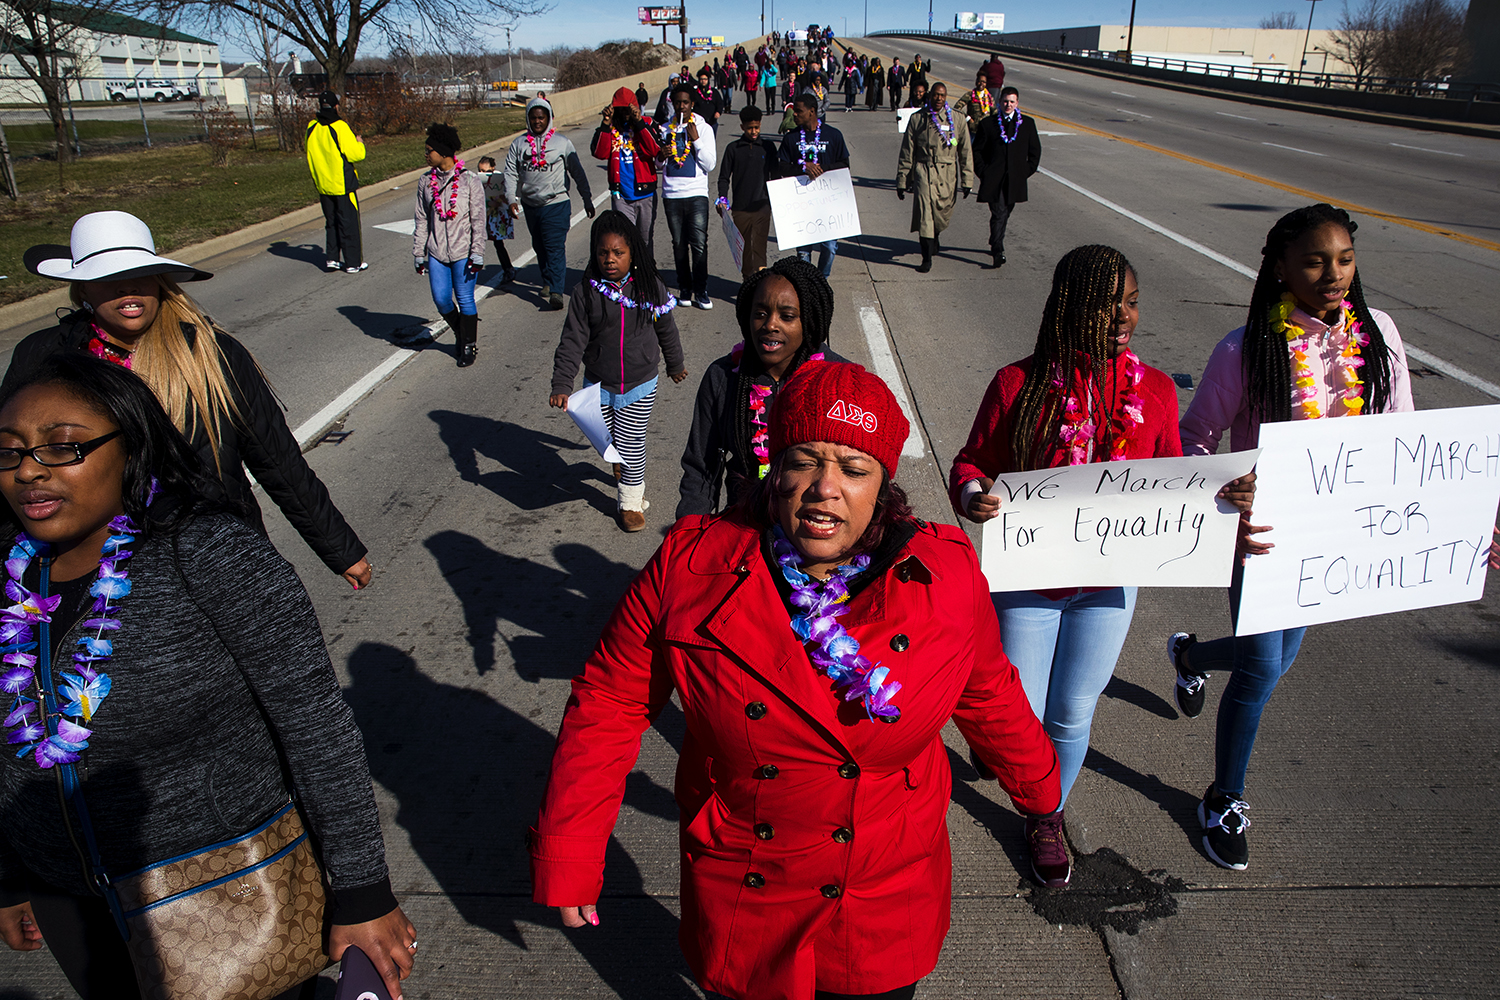 Sonya Perkins, center, sings as she participates in a reenactment of the historic 1965 Selma to Montgomery March on Sunday, March 25, 2018. The march, from Chamberlain Park to the Old State Capitol, was organized by the Sangamon County 4-H club. [Ted Schurter/The State Journal-Register]